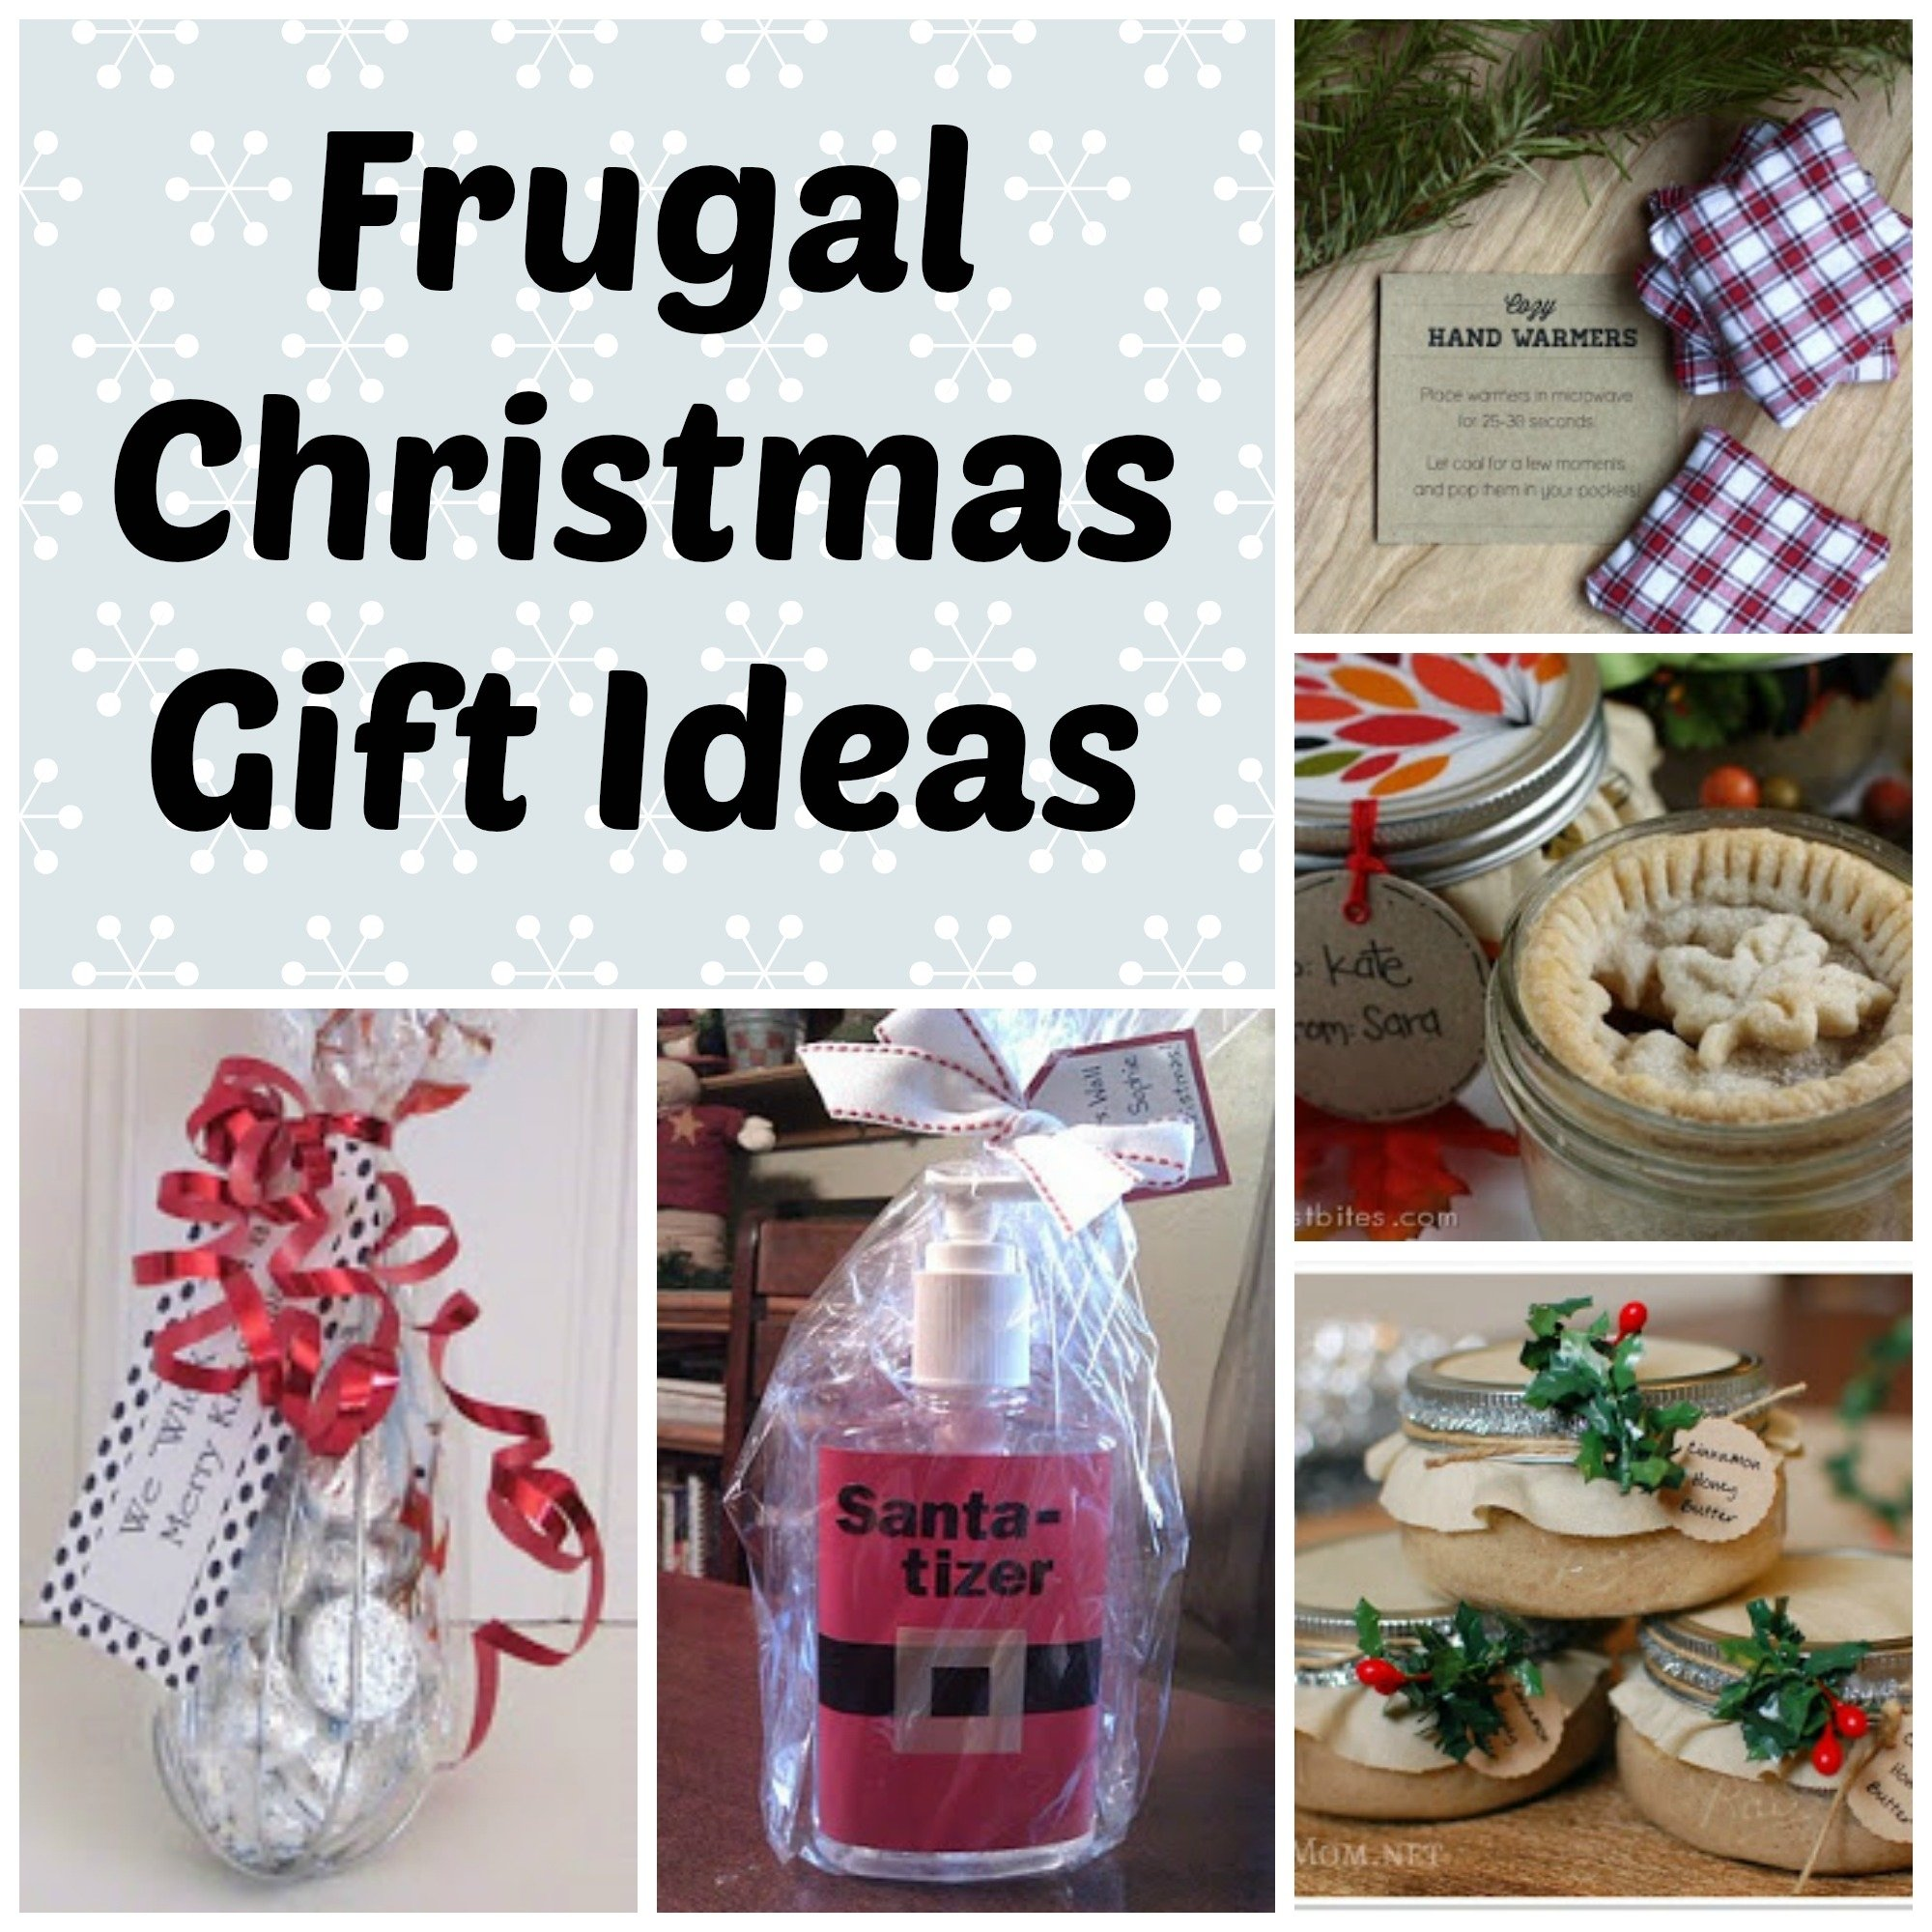 10 Stylish Christmas Gift Ideas On A Budget frugal christmas gift ideas part 4 frugal christmas frugal and 6